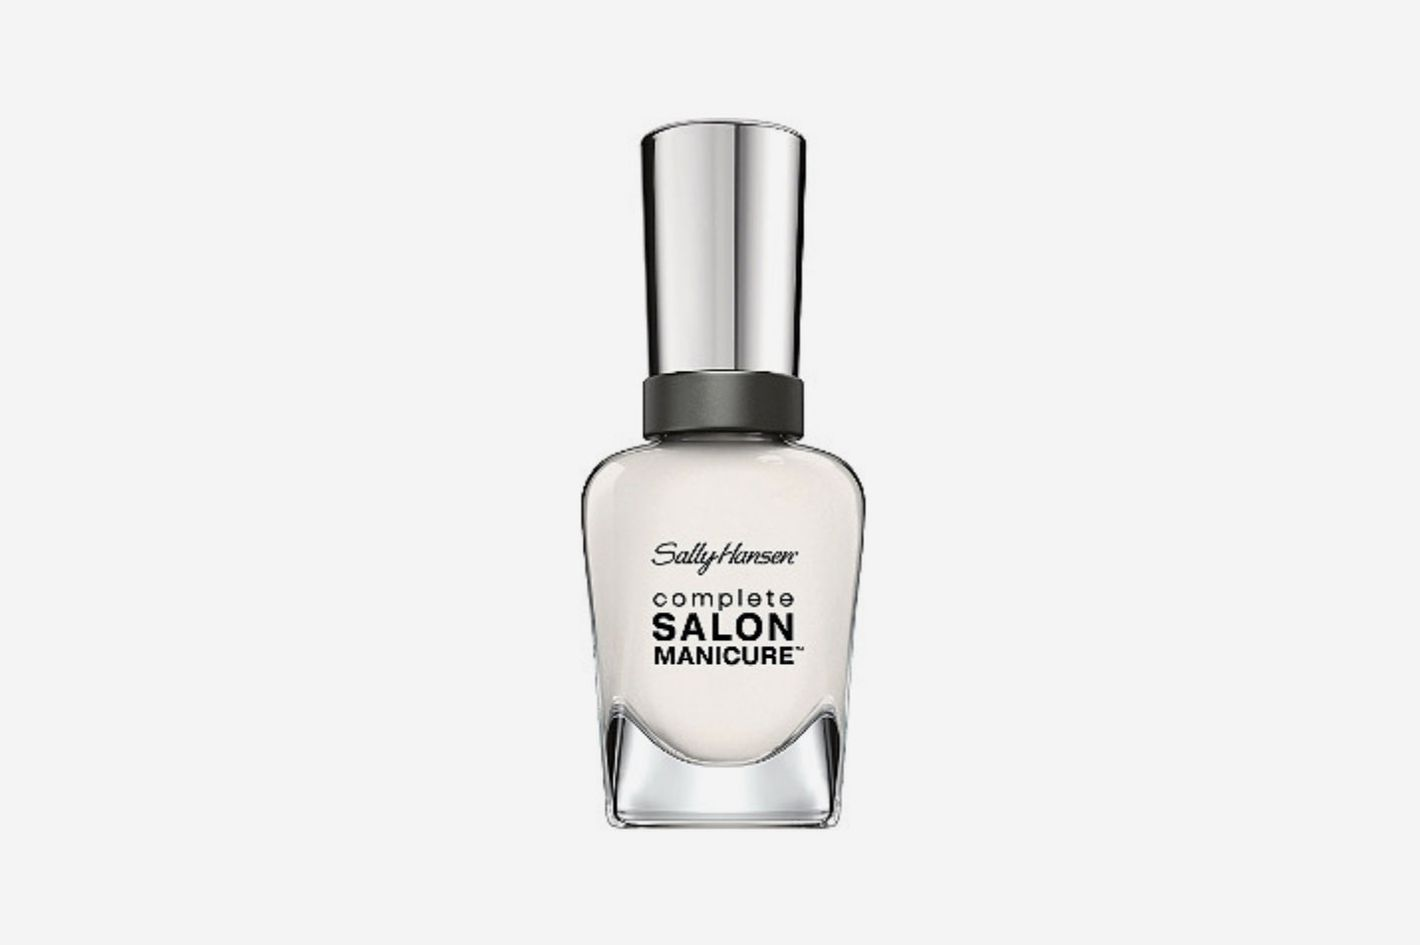 Sally Hansen Complete Salon Manicure in Let's Snow